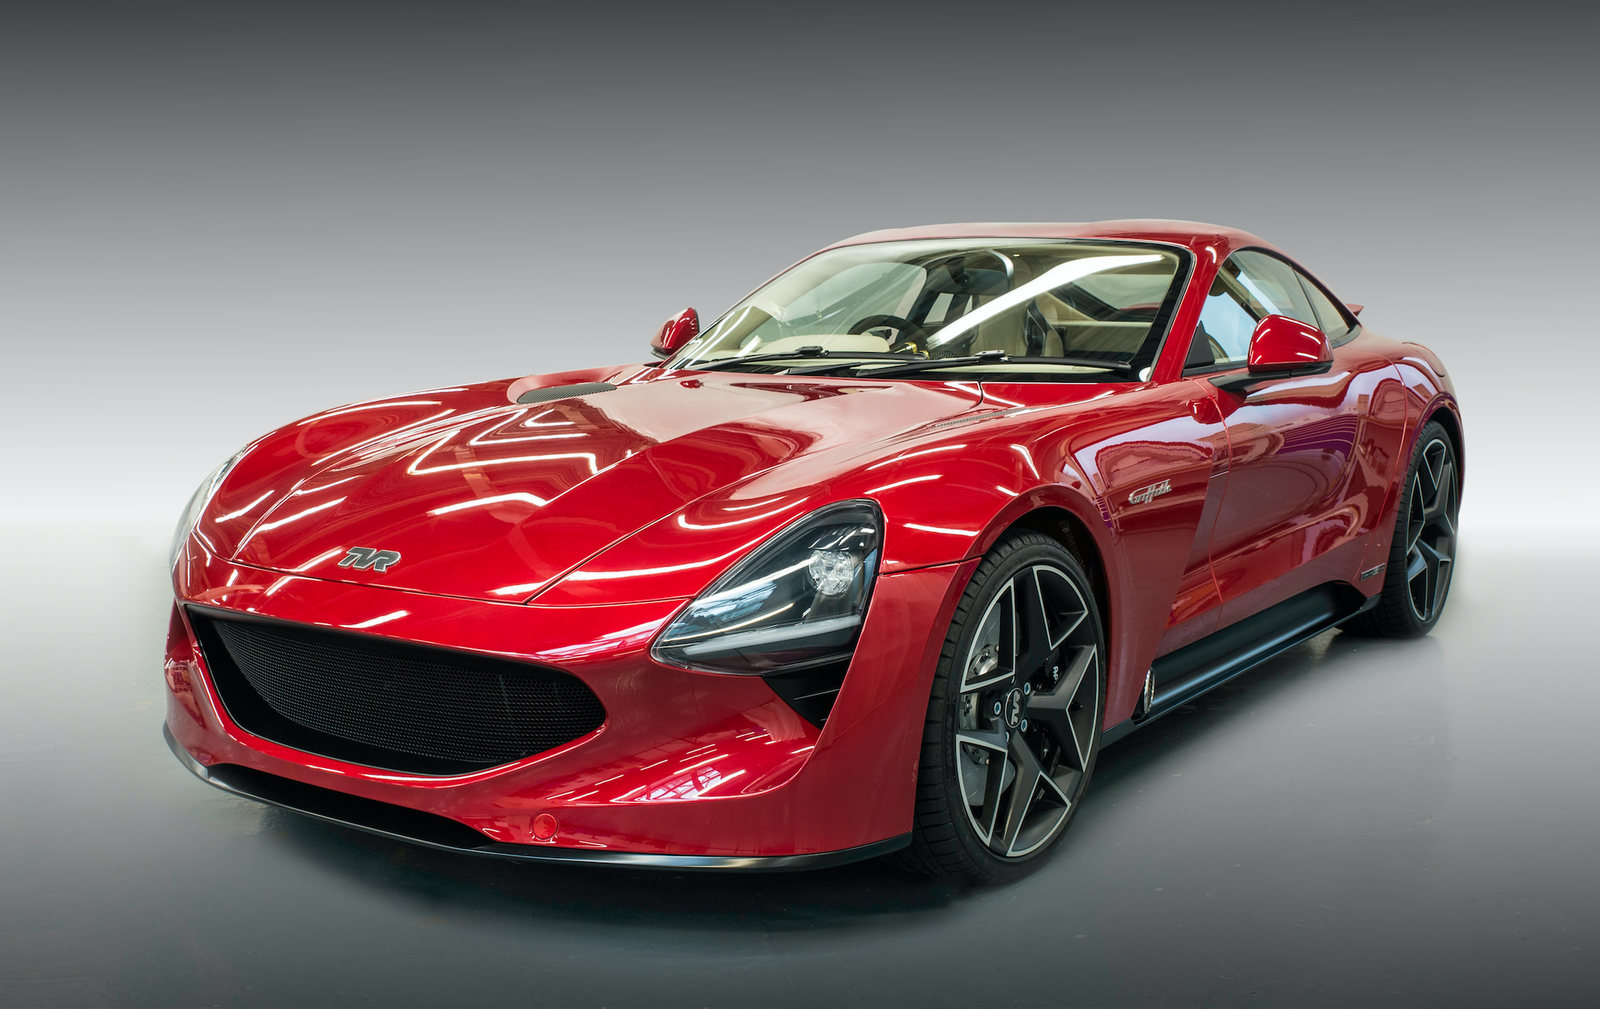 This Is The New 500 Hp 200 Mph Tvr Griffith British Sports Cars Sports Car New Sports Cars